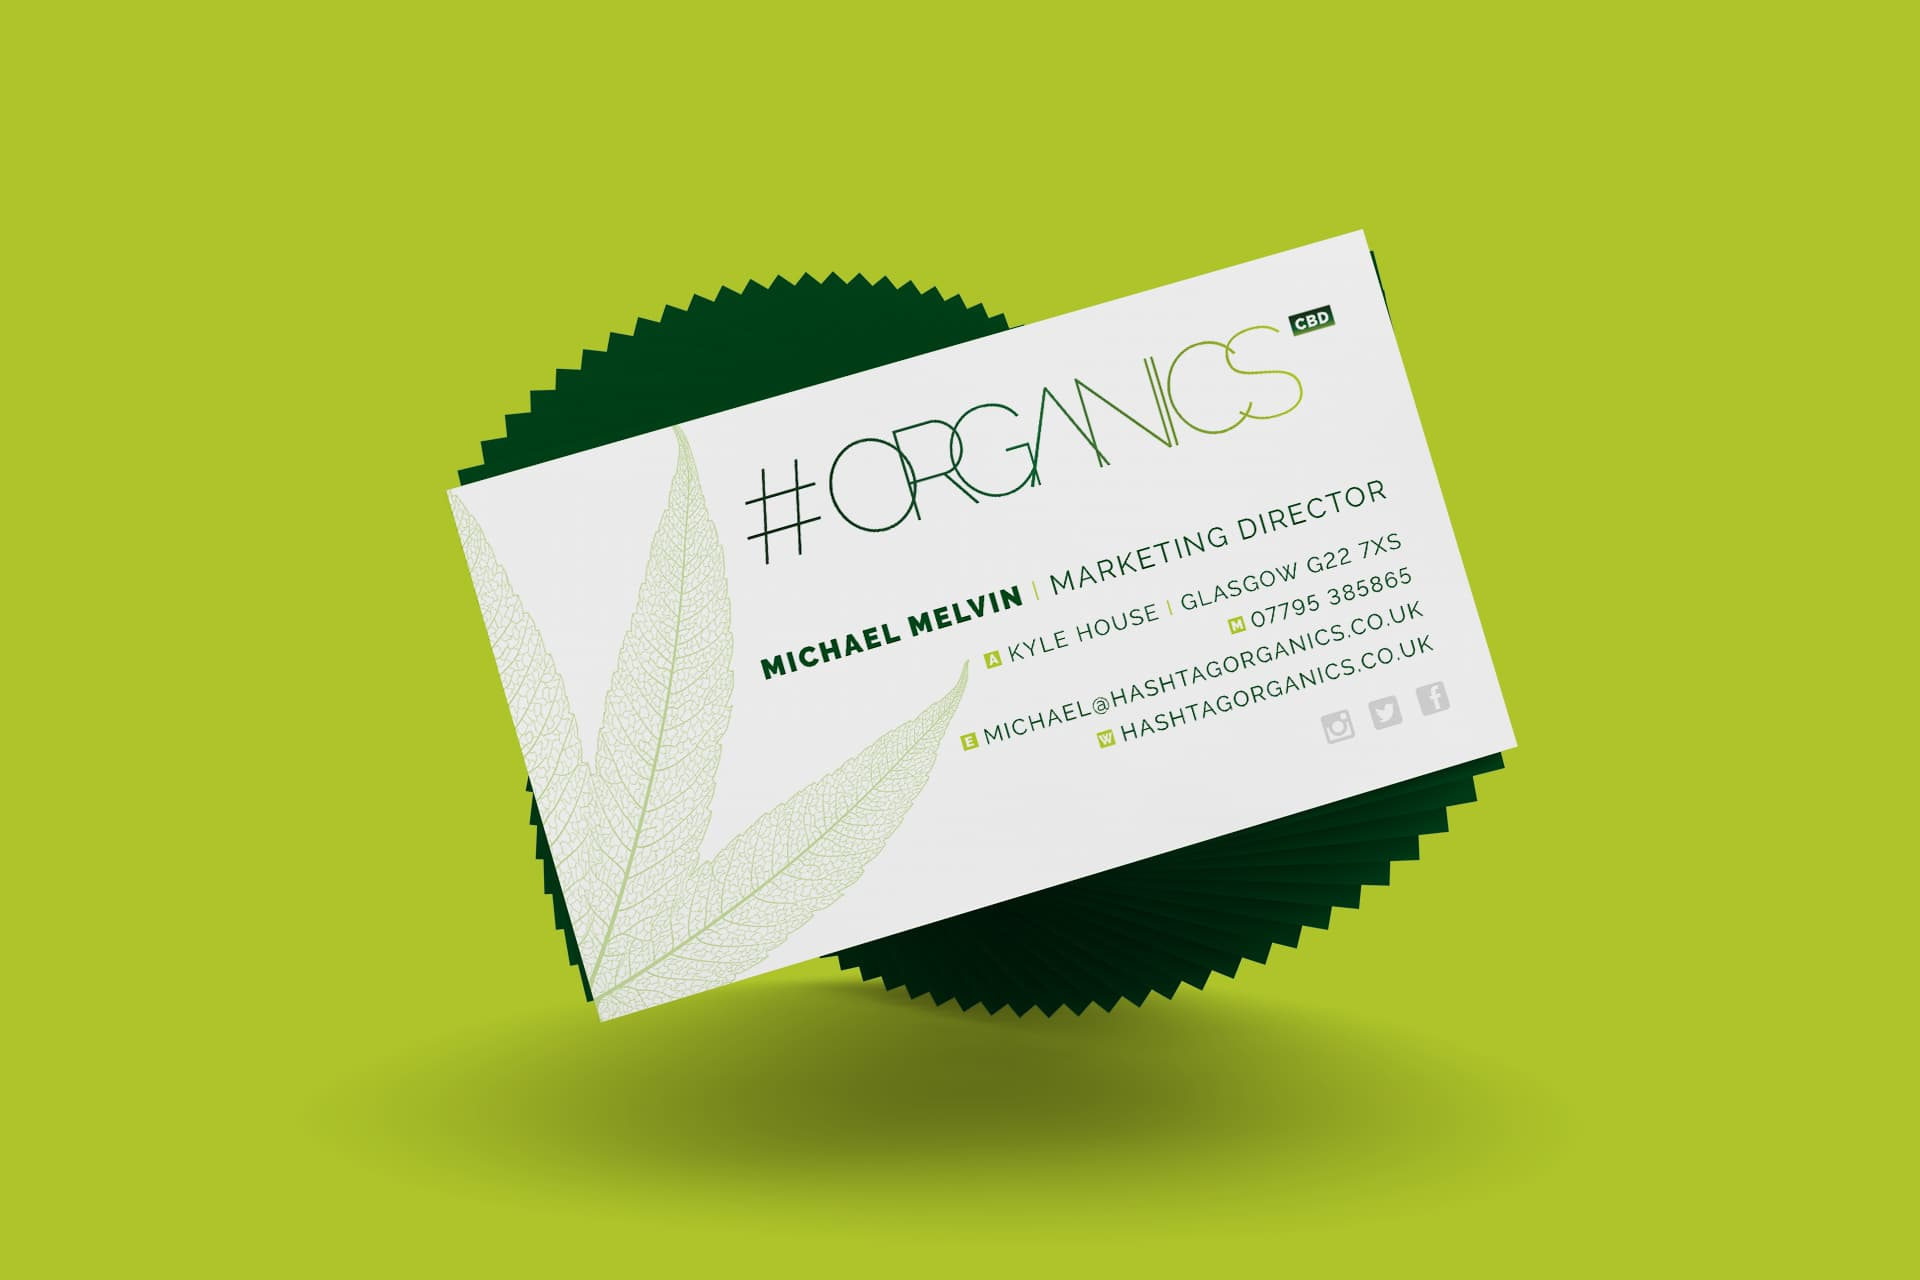 Hashtag Organics CBD Business Cards